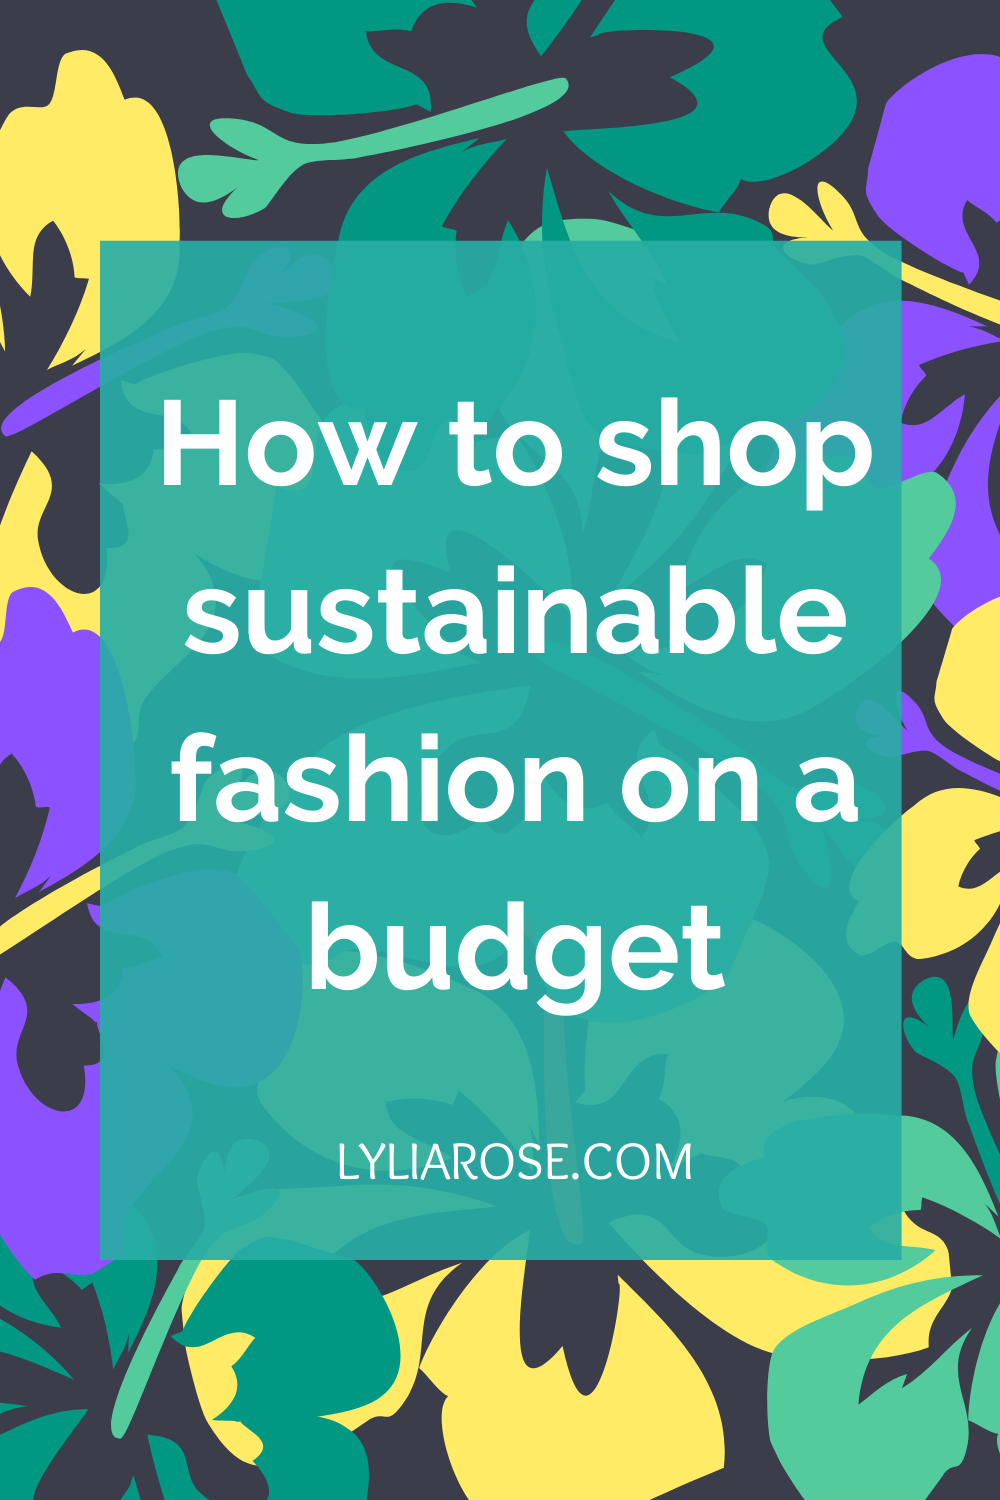 How to shop sustainable fashion on a budget (2)